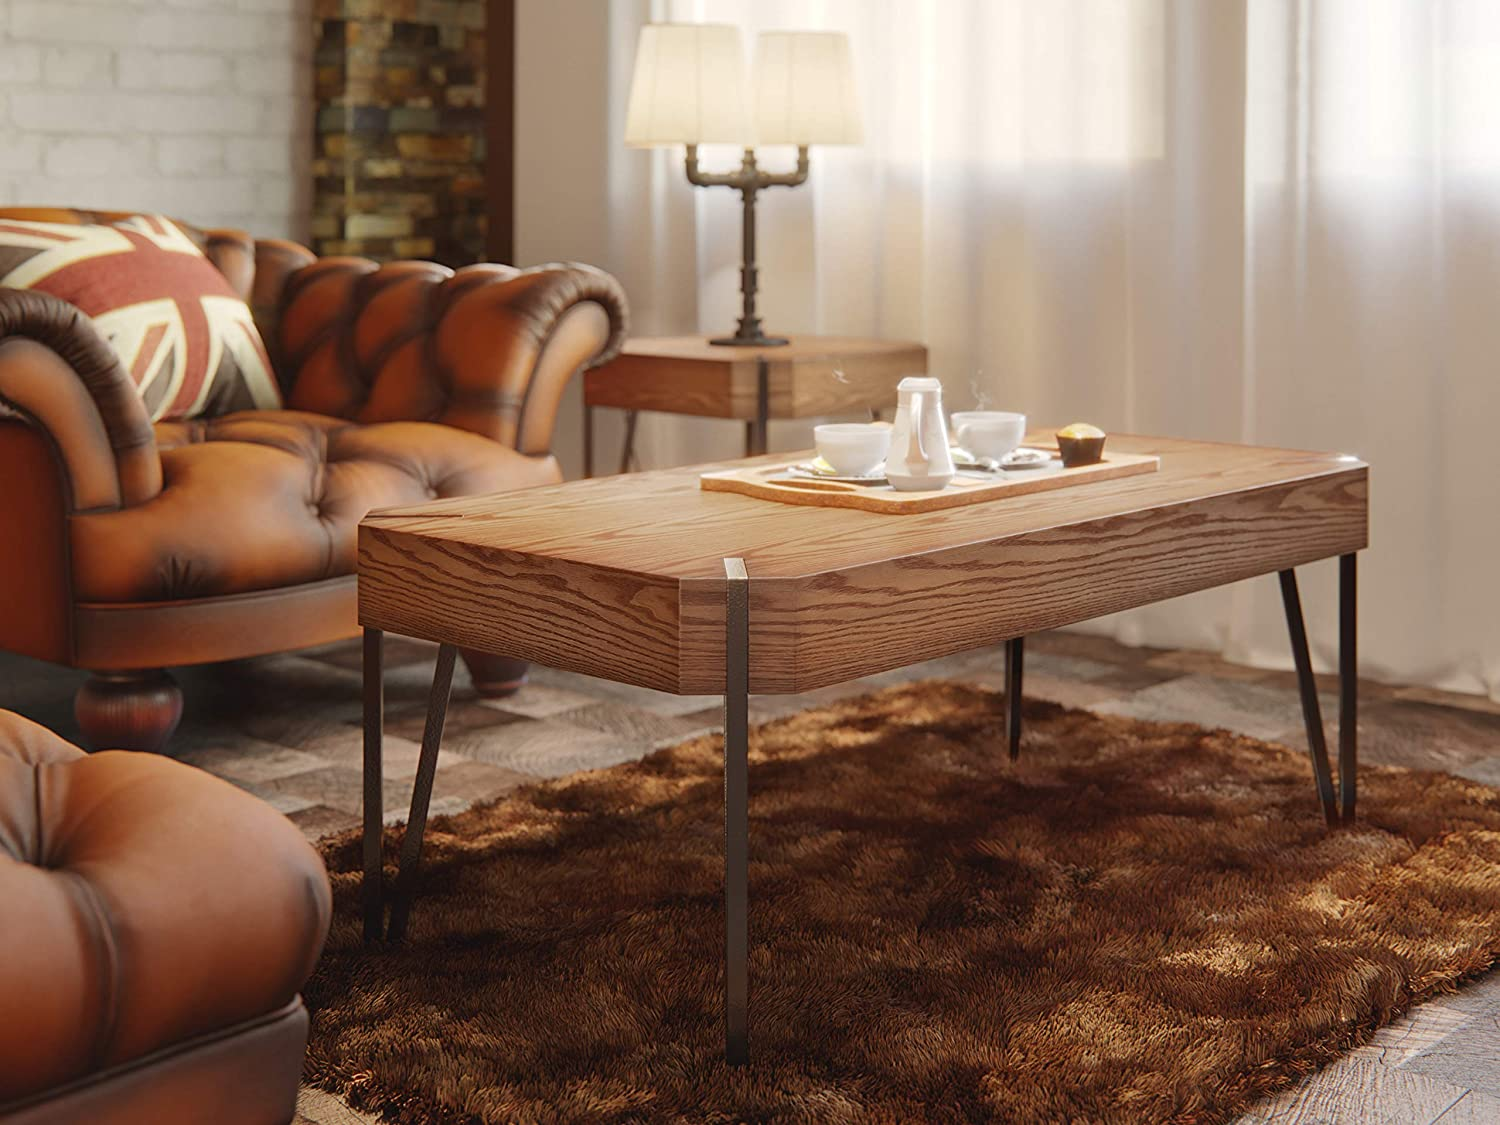 HILLENBRAND CO Rustic Coffee Table Oak Wood Veneer Finish. Sturdy Industrial Design Metal Legs. Wooden Coffee Tables for Living Room, TV, Sofa, Home Office. Modern Farmhouse Coffee Table. 46 x 23